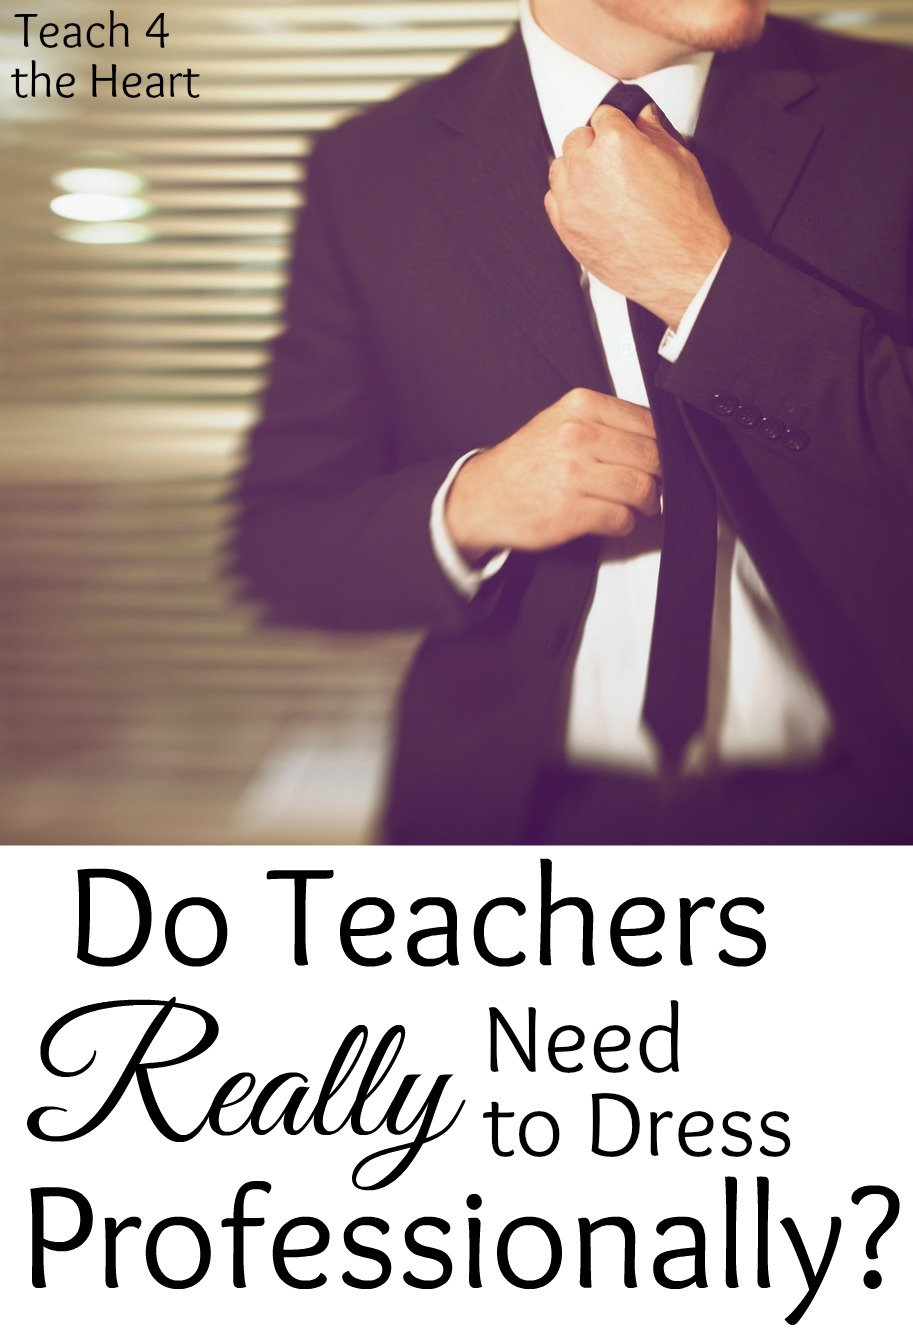 Do teachers really need to dress professionally?